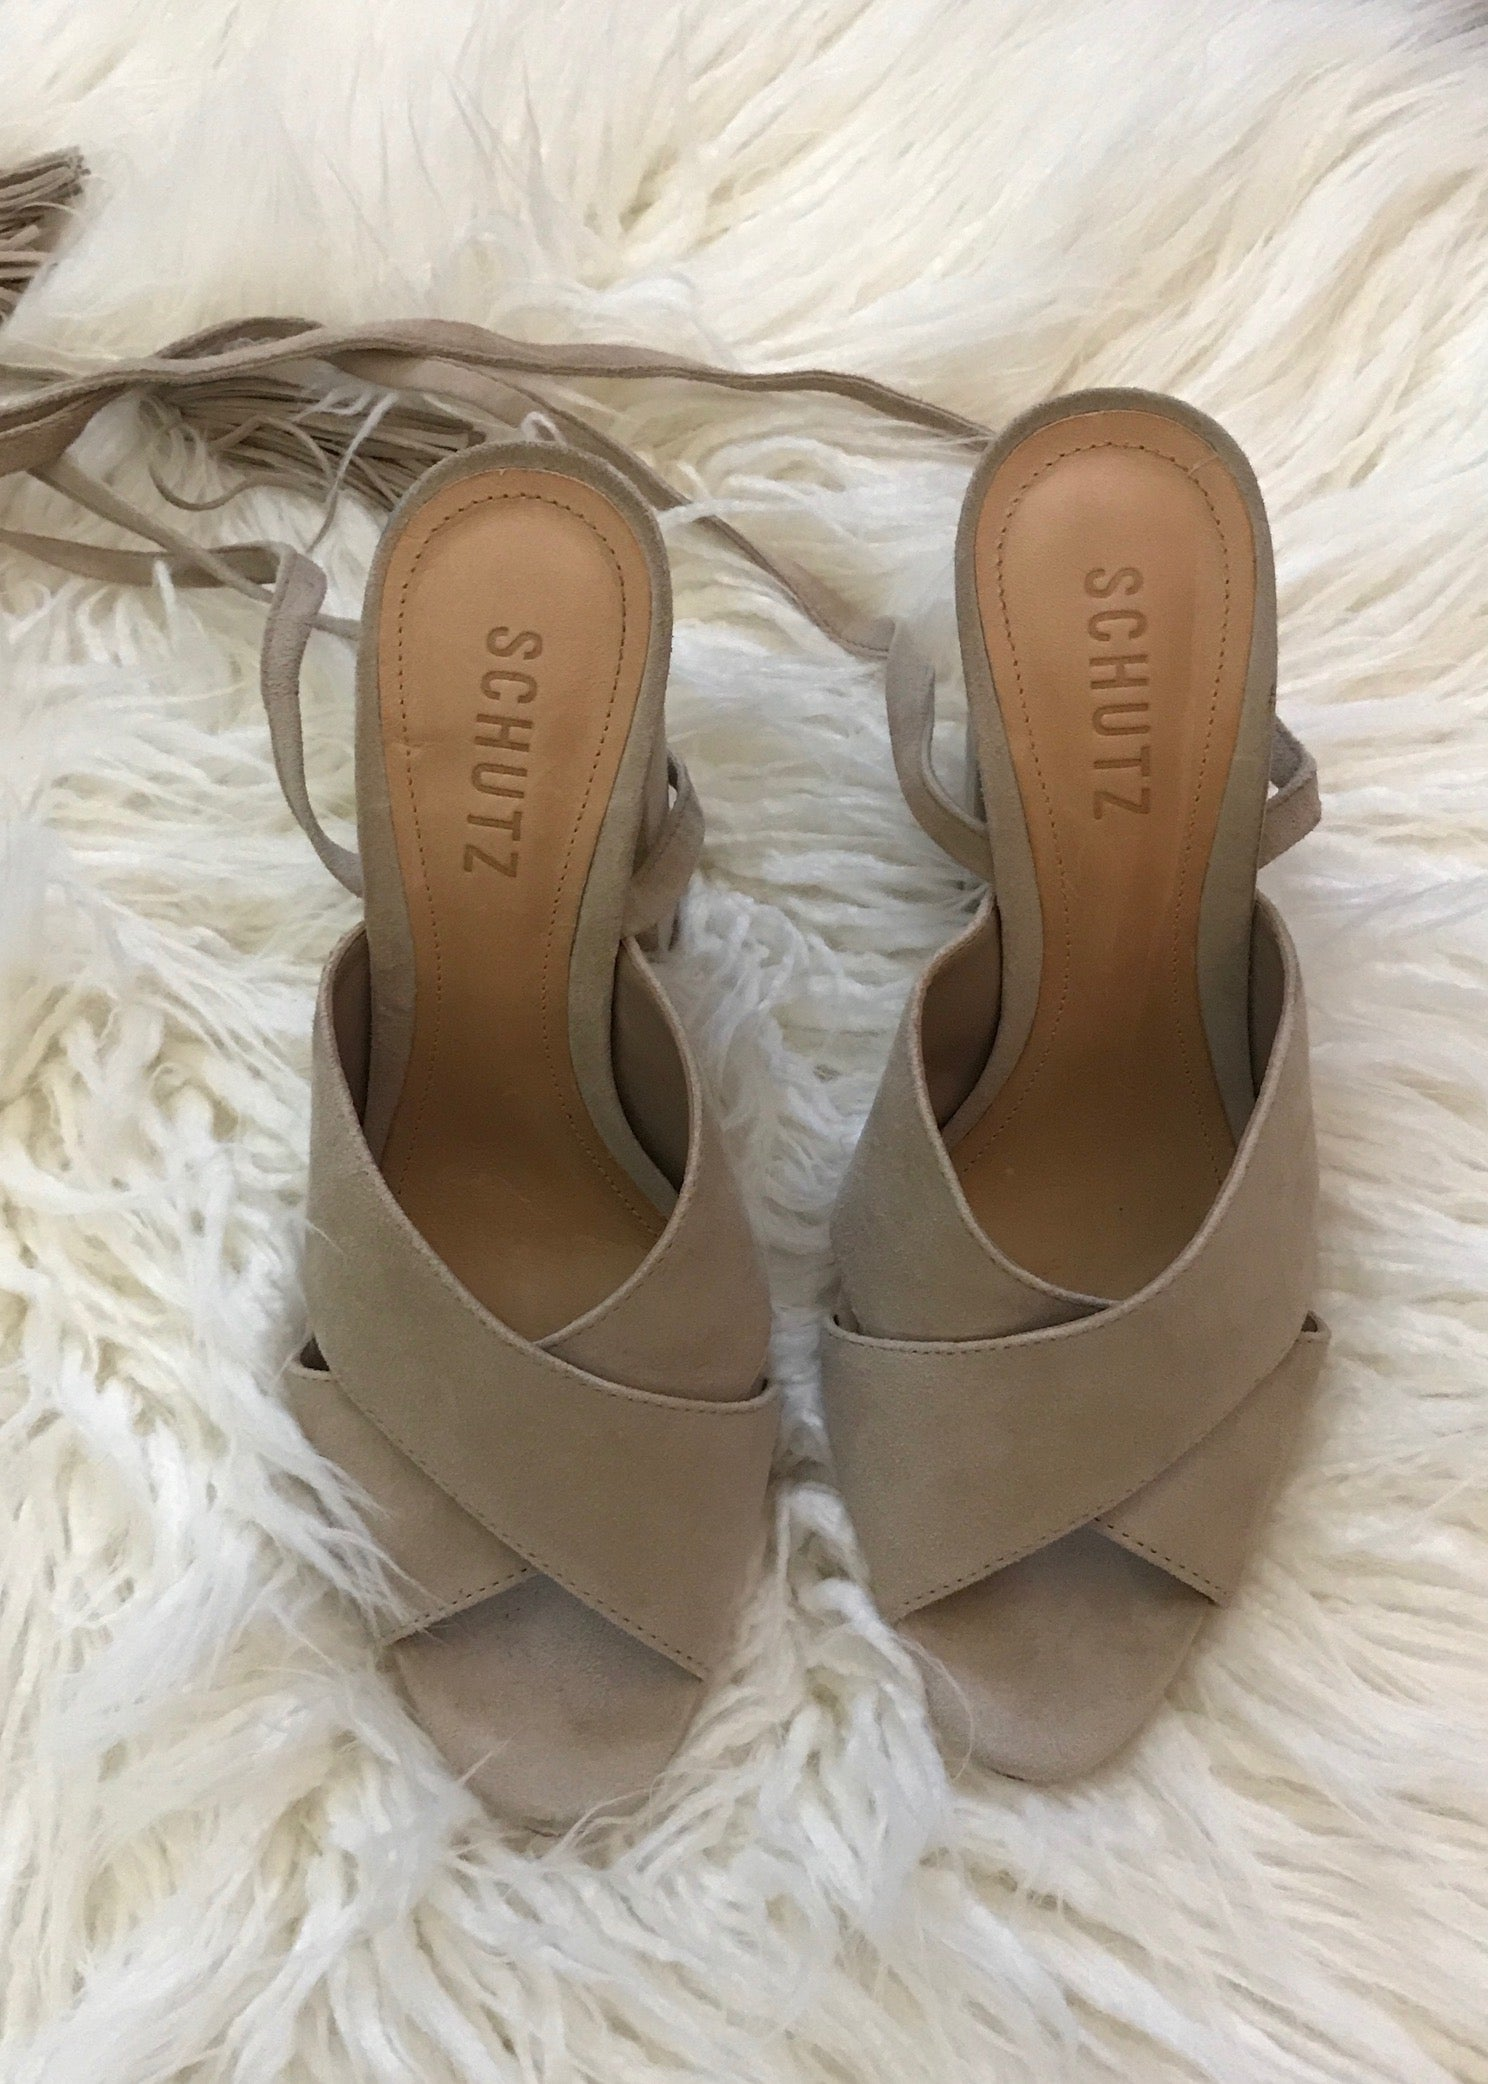 SCUTCH Damilia Wrap Up Heeled Platform Sandal in Nude Tan Beige